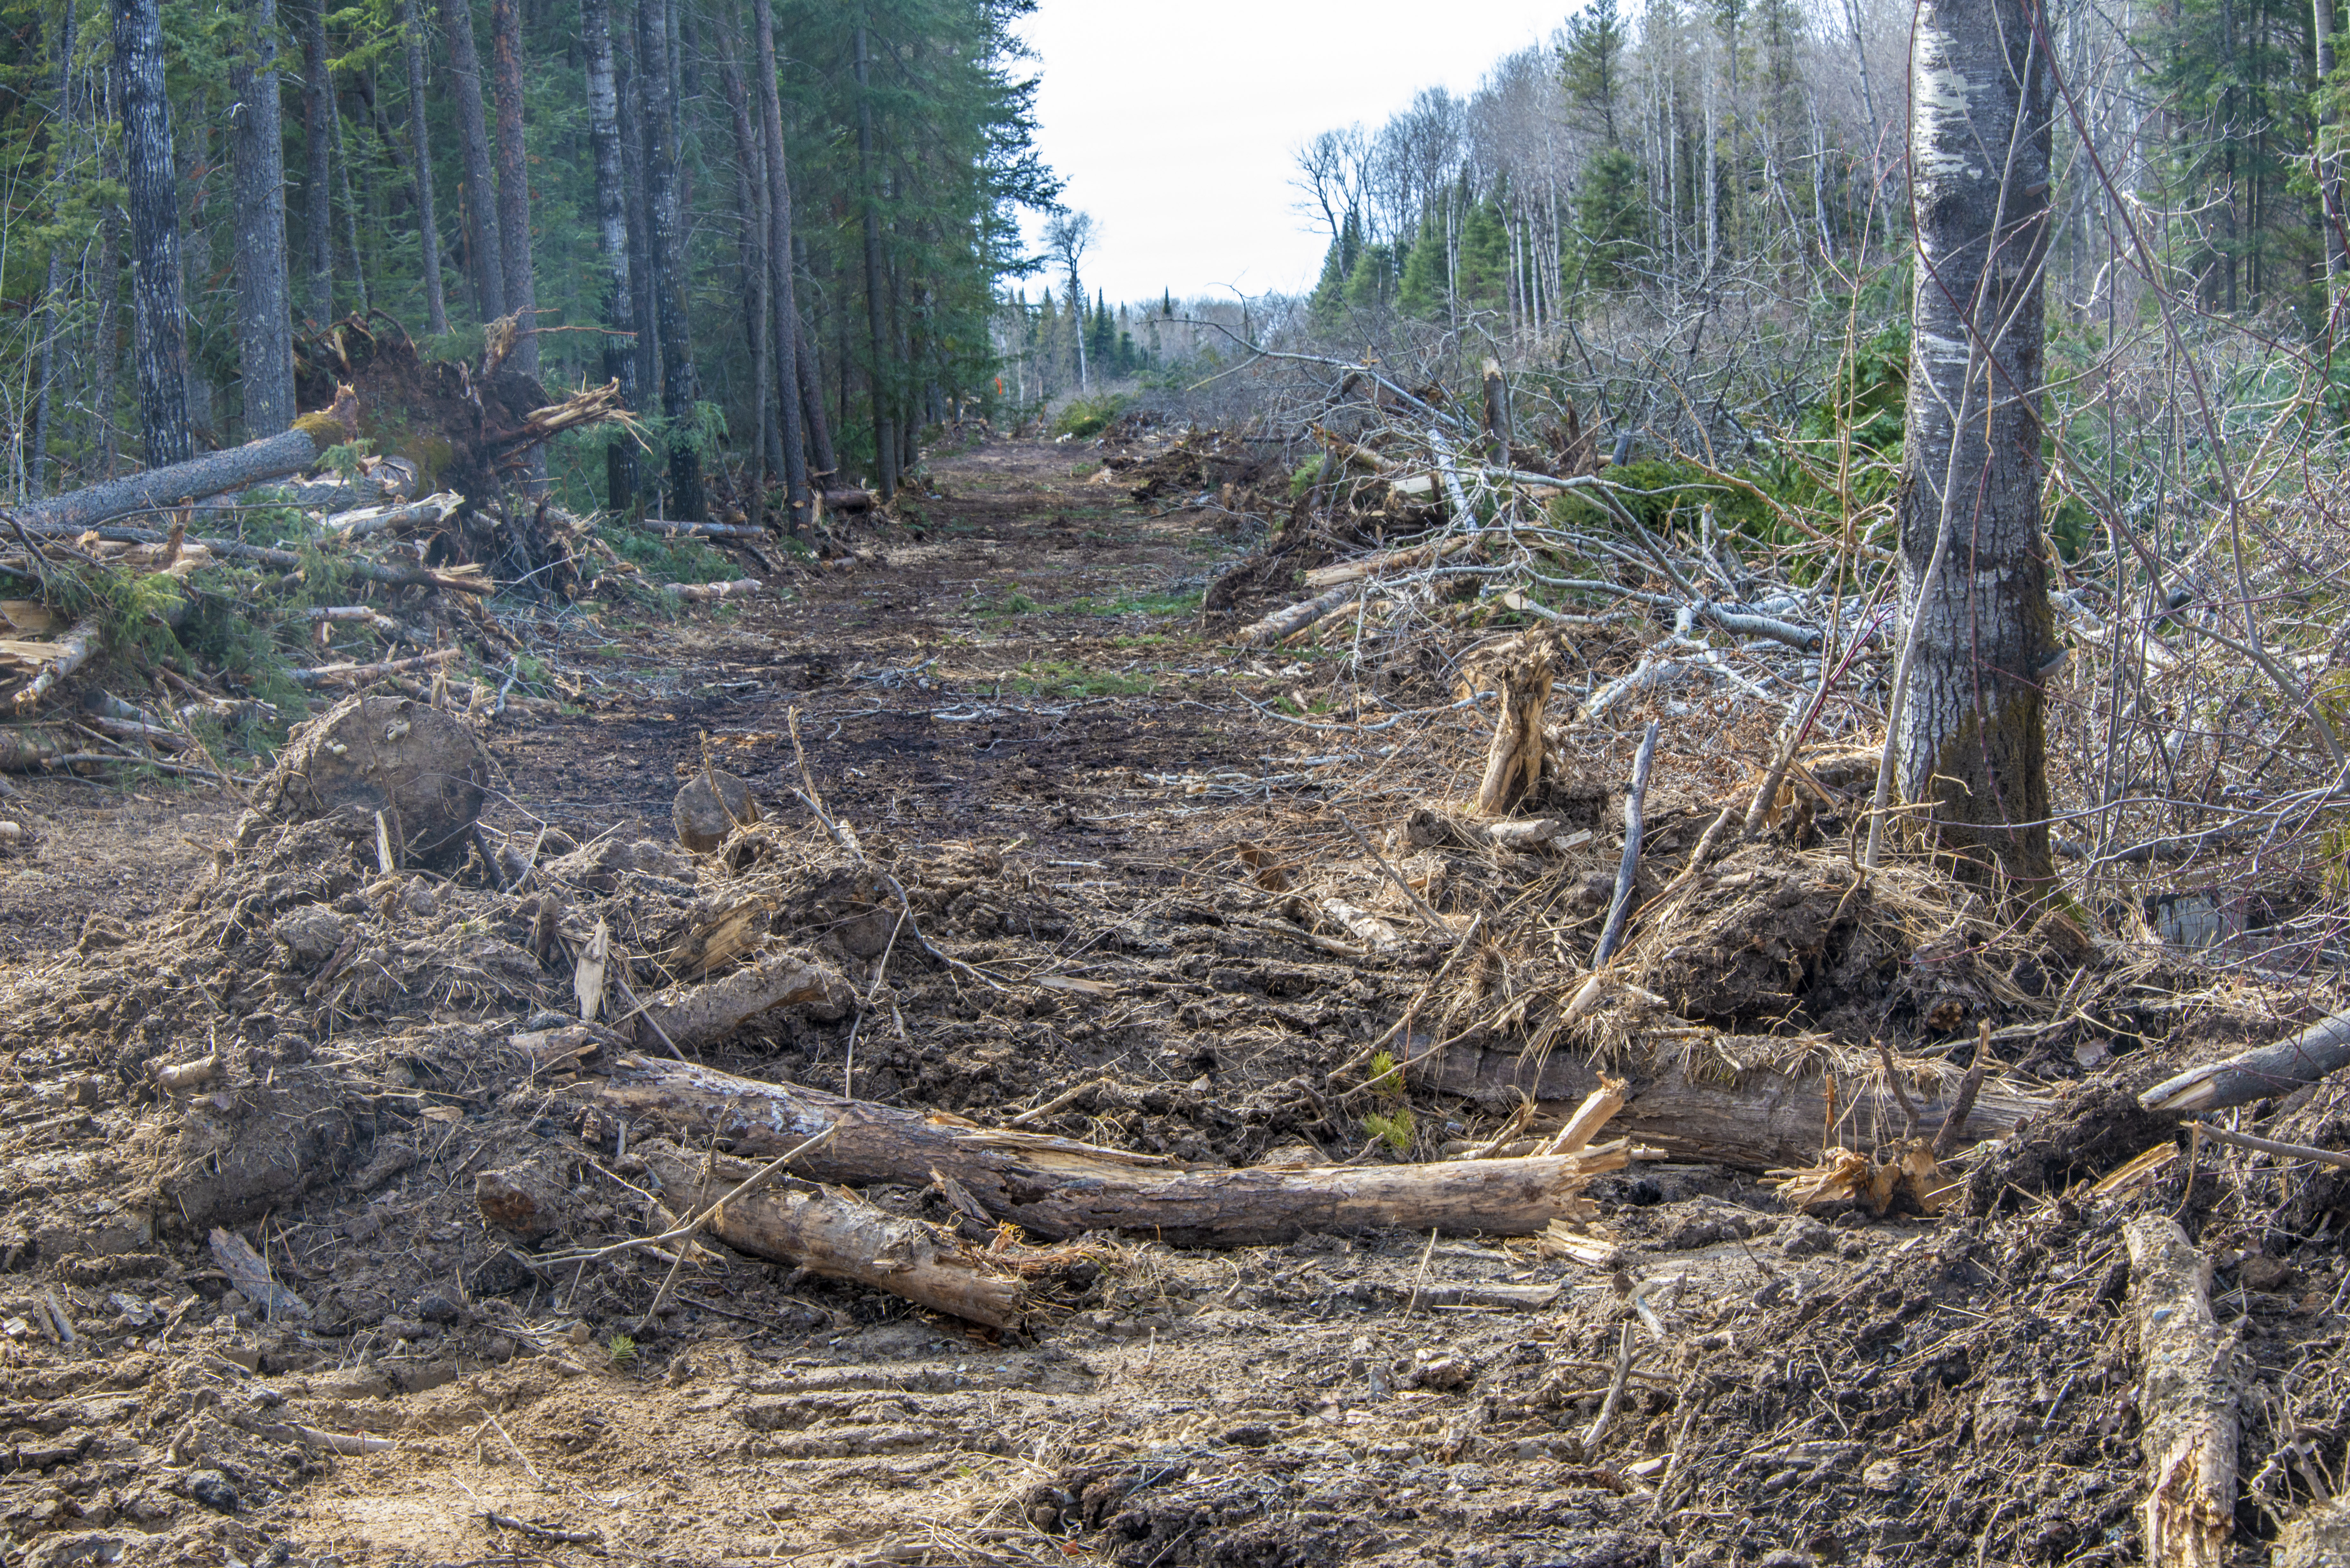 Bulldozing done on Hollow Water First Nation land for the frac sand mine